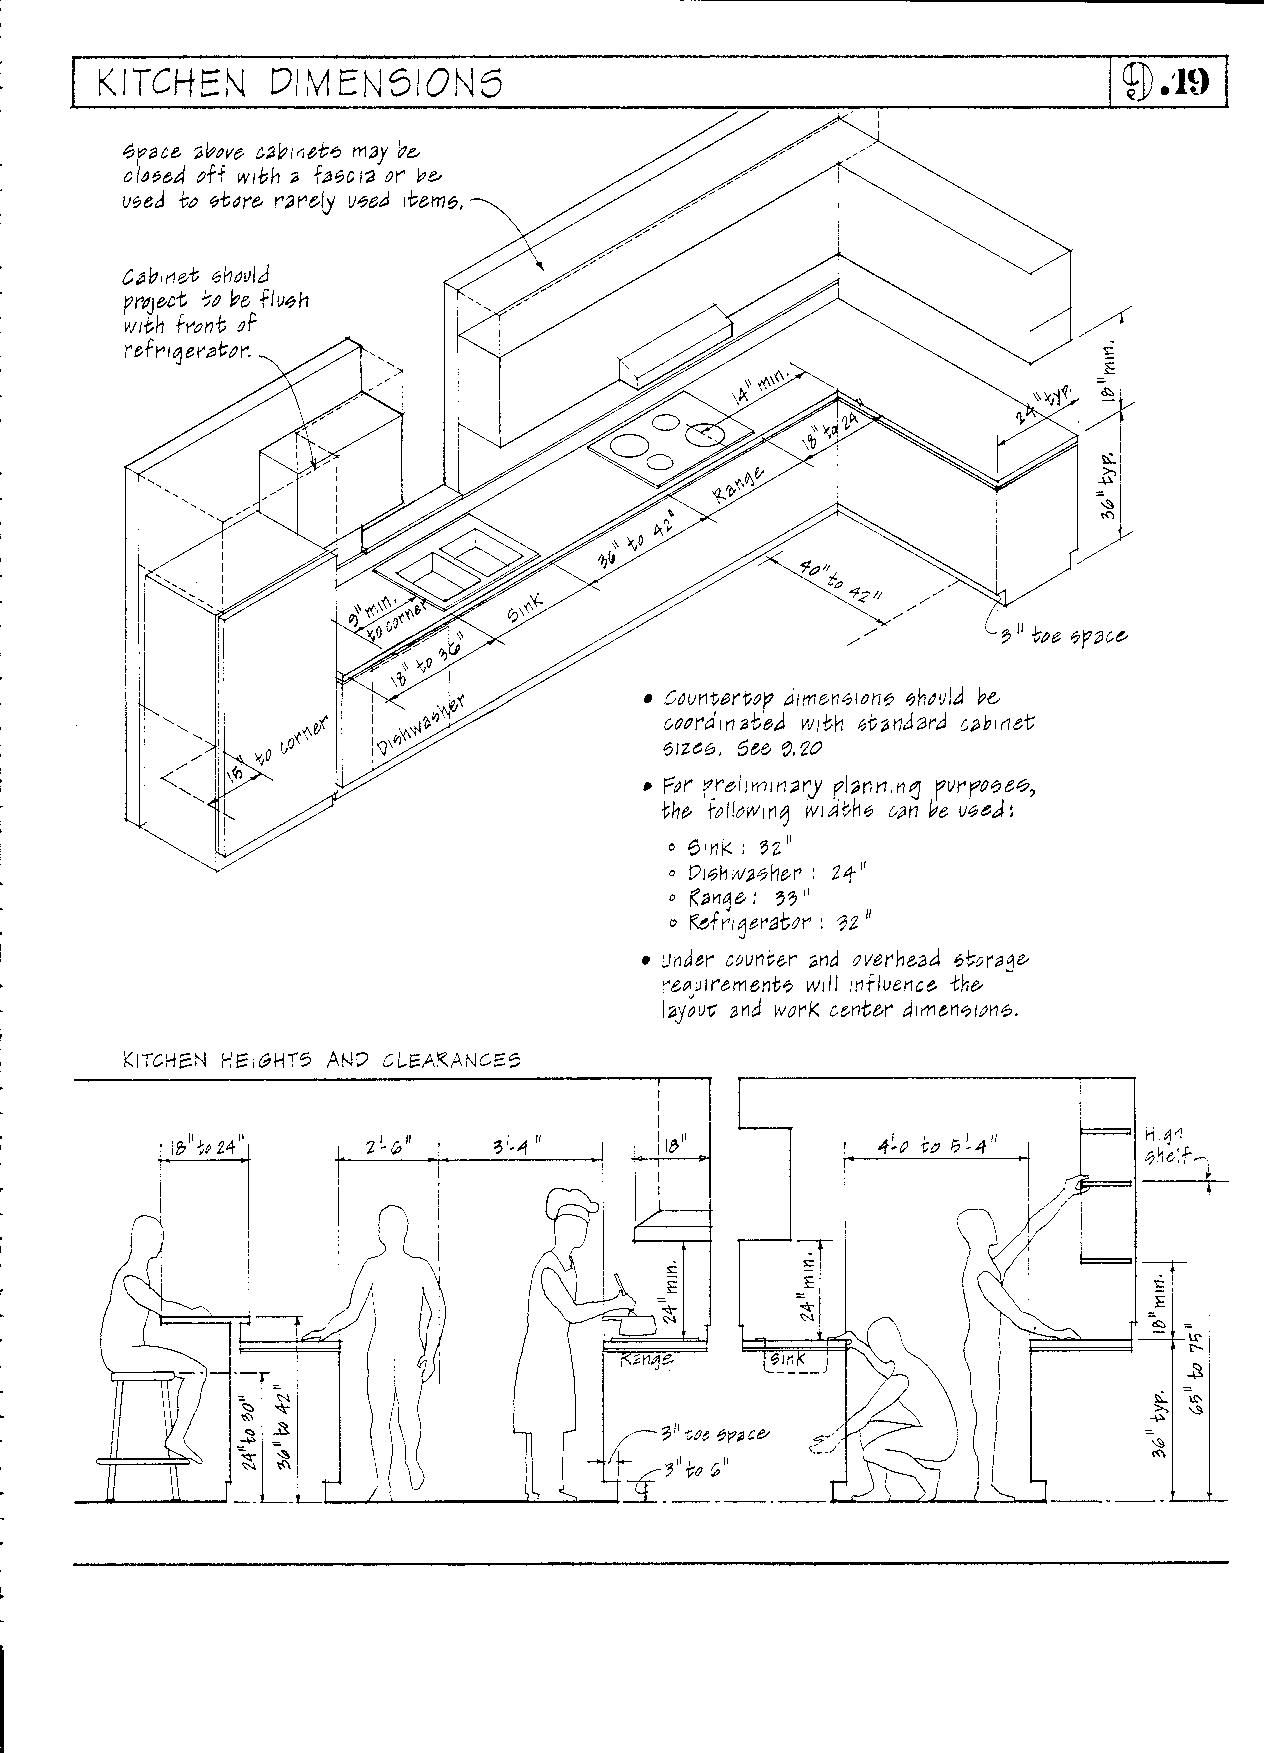 Dimensions Of Kitchen Cabinets Kitchen Dimensions The Link Kwantlencaddcom Expired Refer To